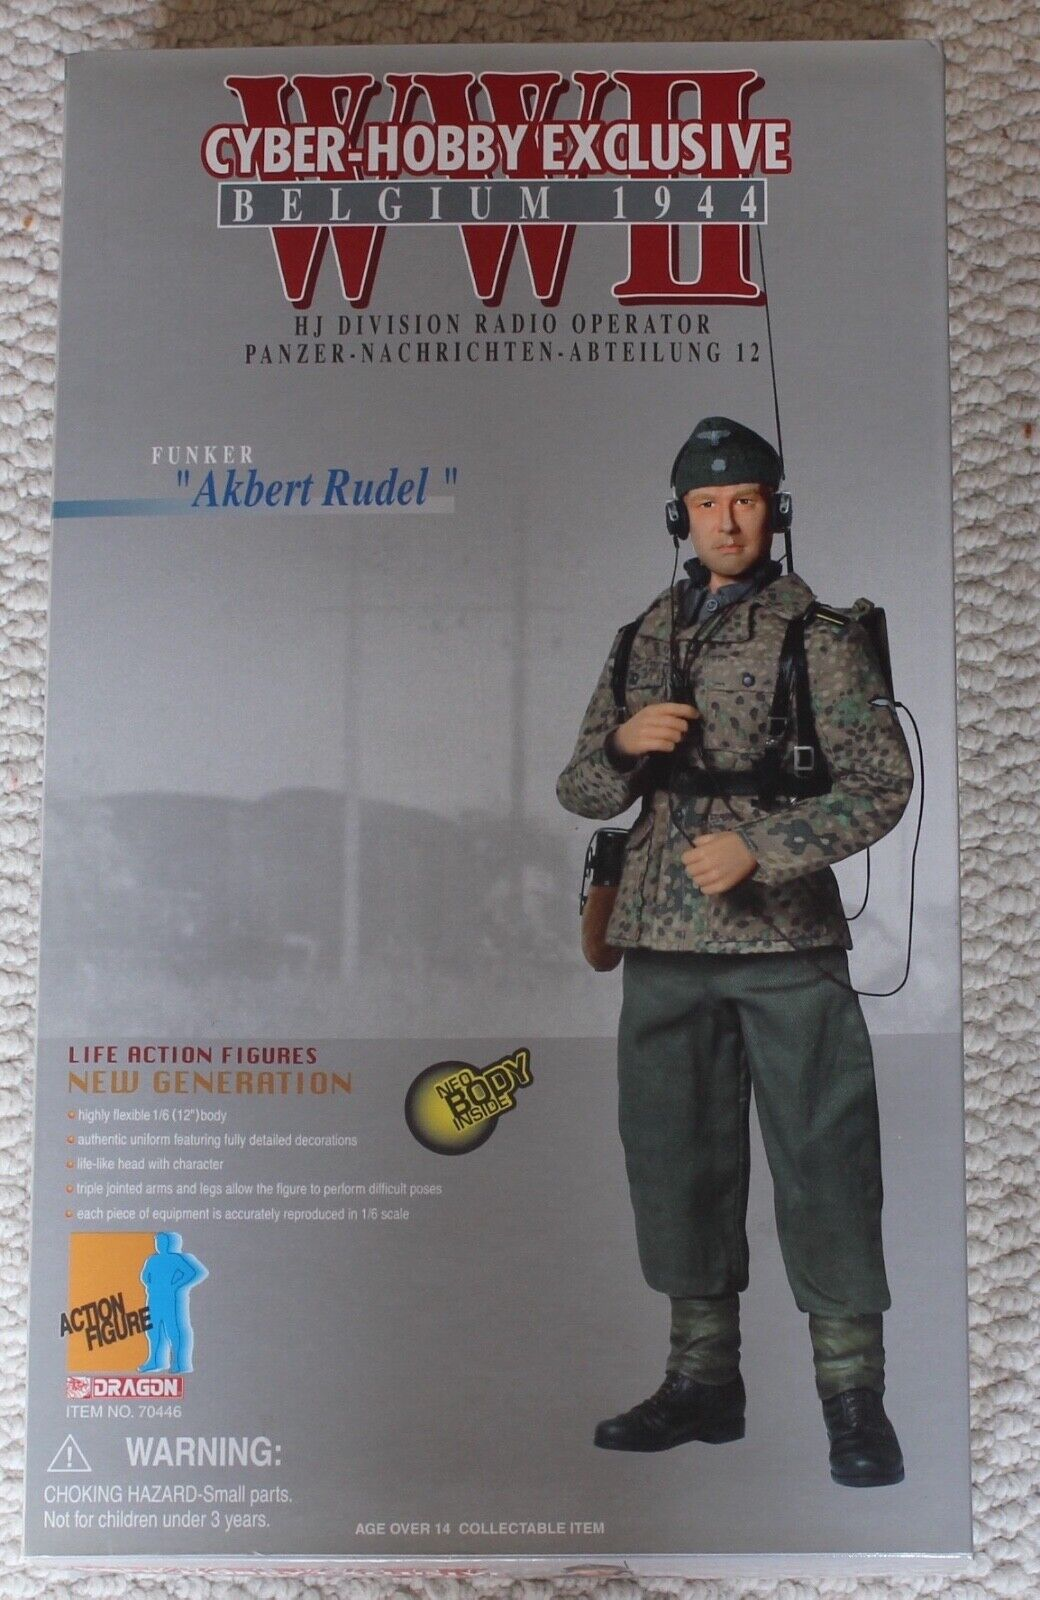 Dragon action figure ww11 akbert rudel  1 6 12'' 70446 did cyber hot toy